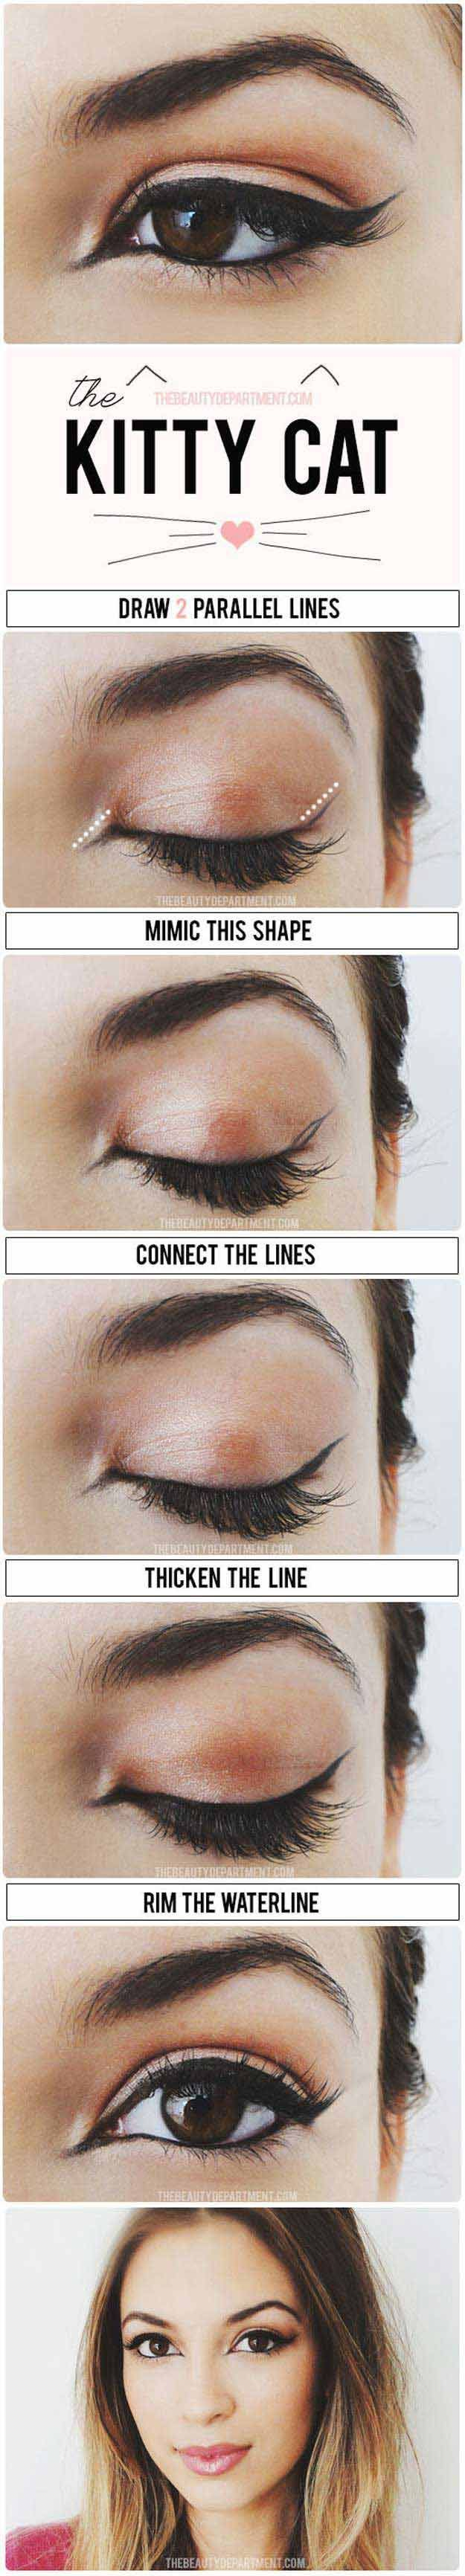 Makeup & Hair Ideas: Makeup Tutorials for Picture Perfect Selfies  The Cat Eye Stylized  Tips Idea